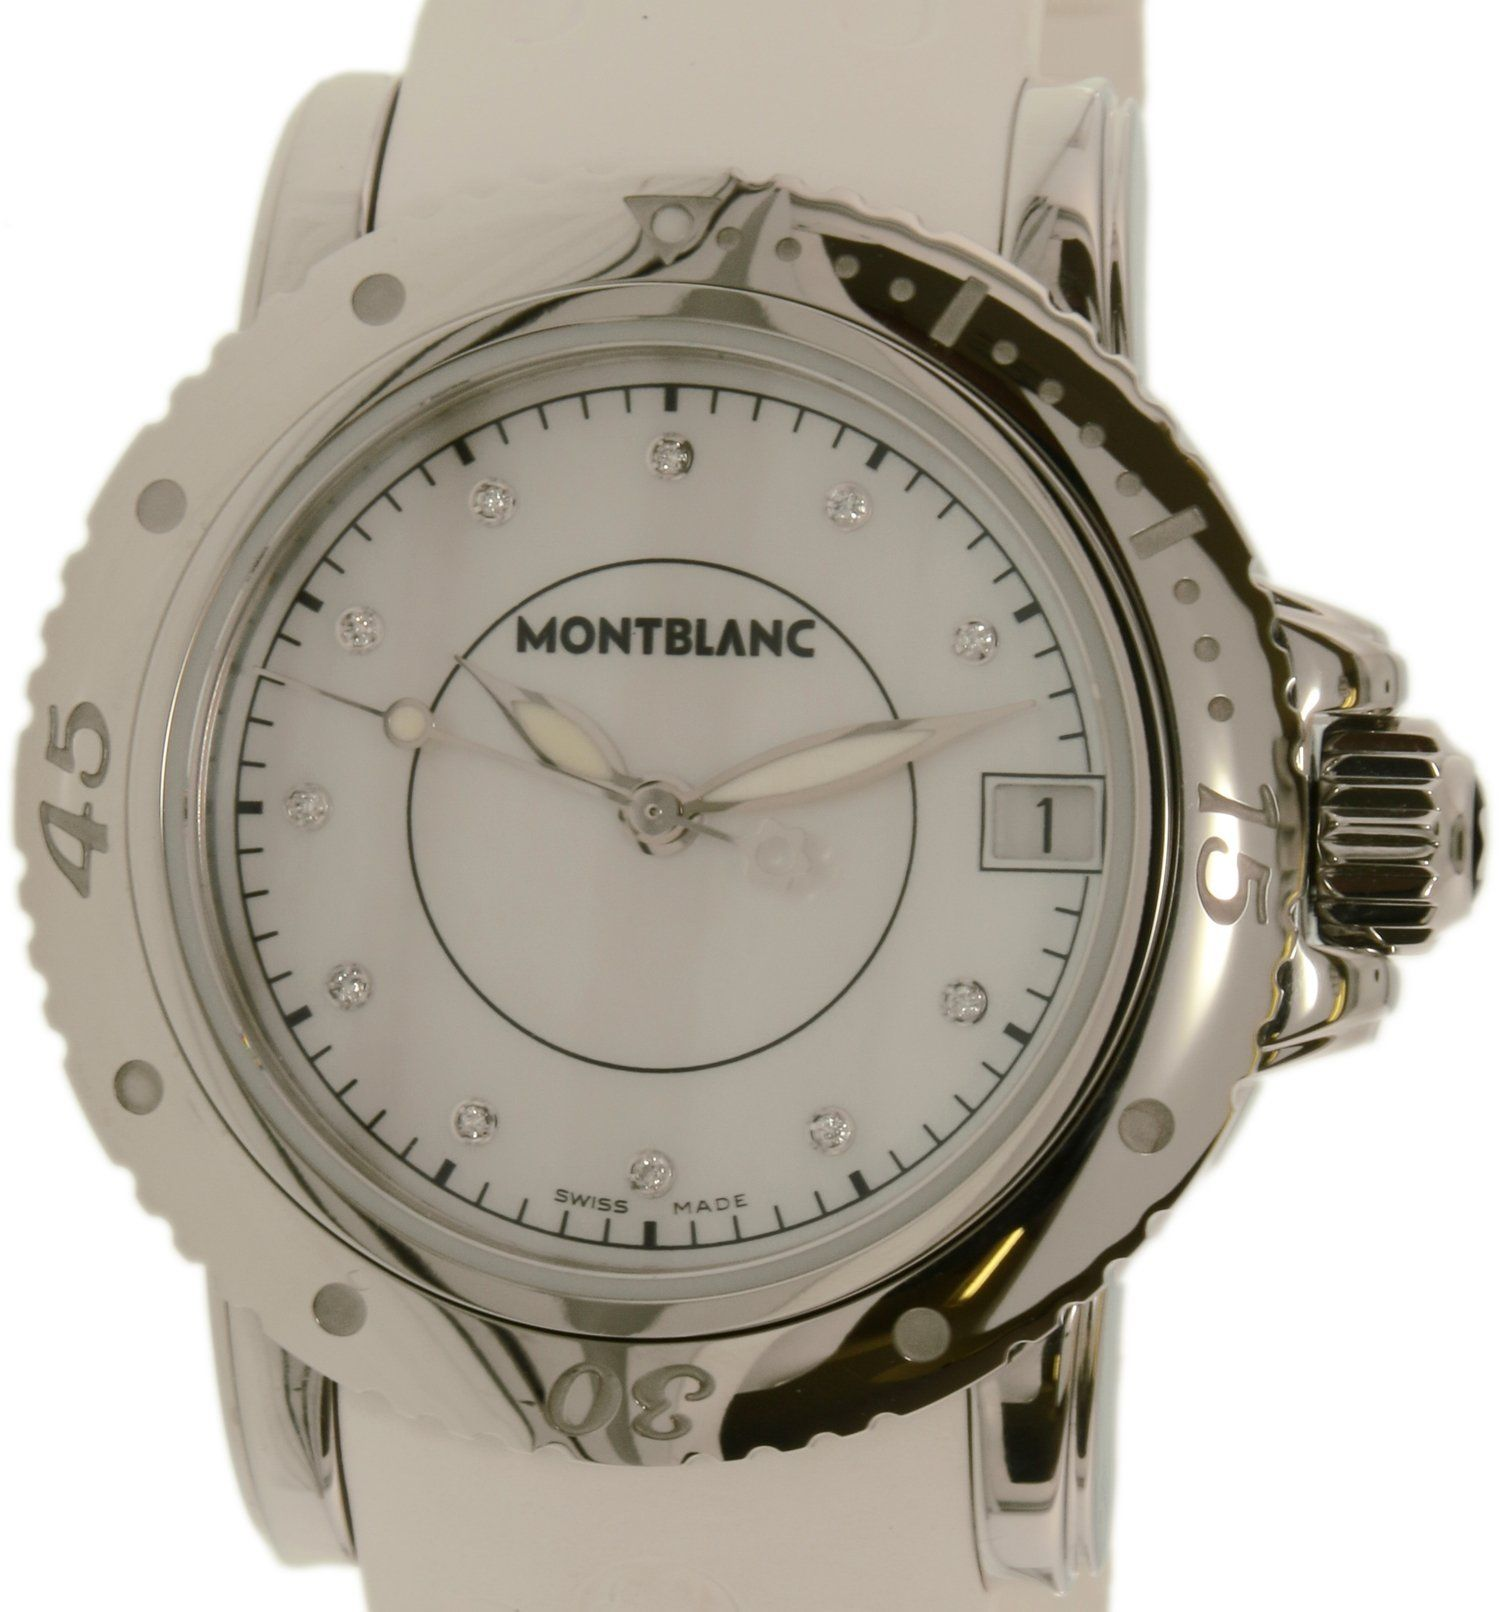 Montblanc Women's Sport 103893 Silver Rubber Swiss Quartz Watch. Sport Collection. Swiss Quartz Movement. 30 Meters / 100 Feet / 3 ATM Water Resistant. 35mm Case Diameter. Mineral Crystal.